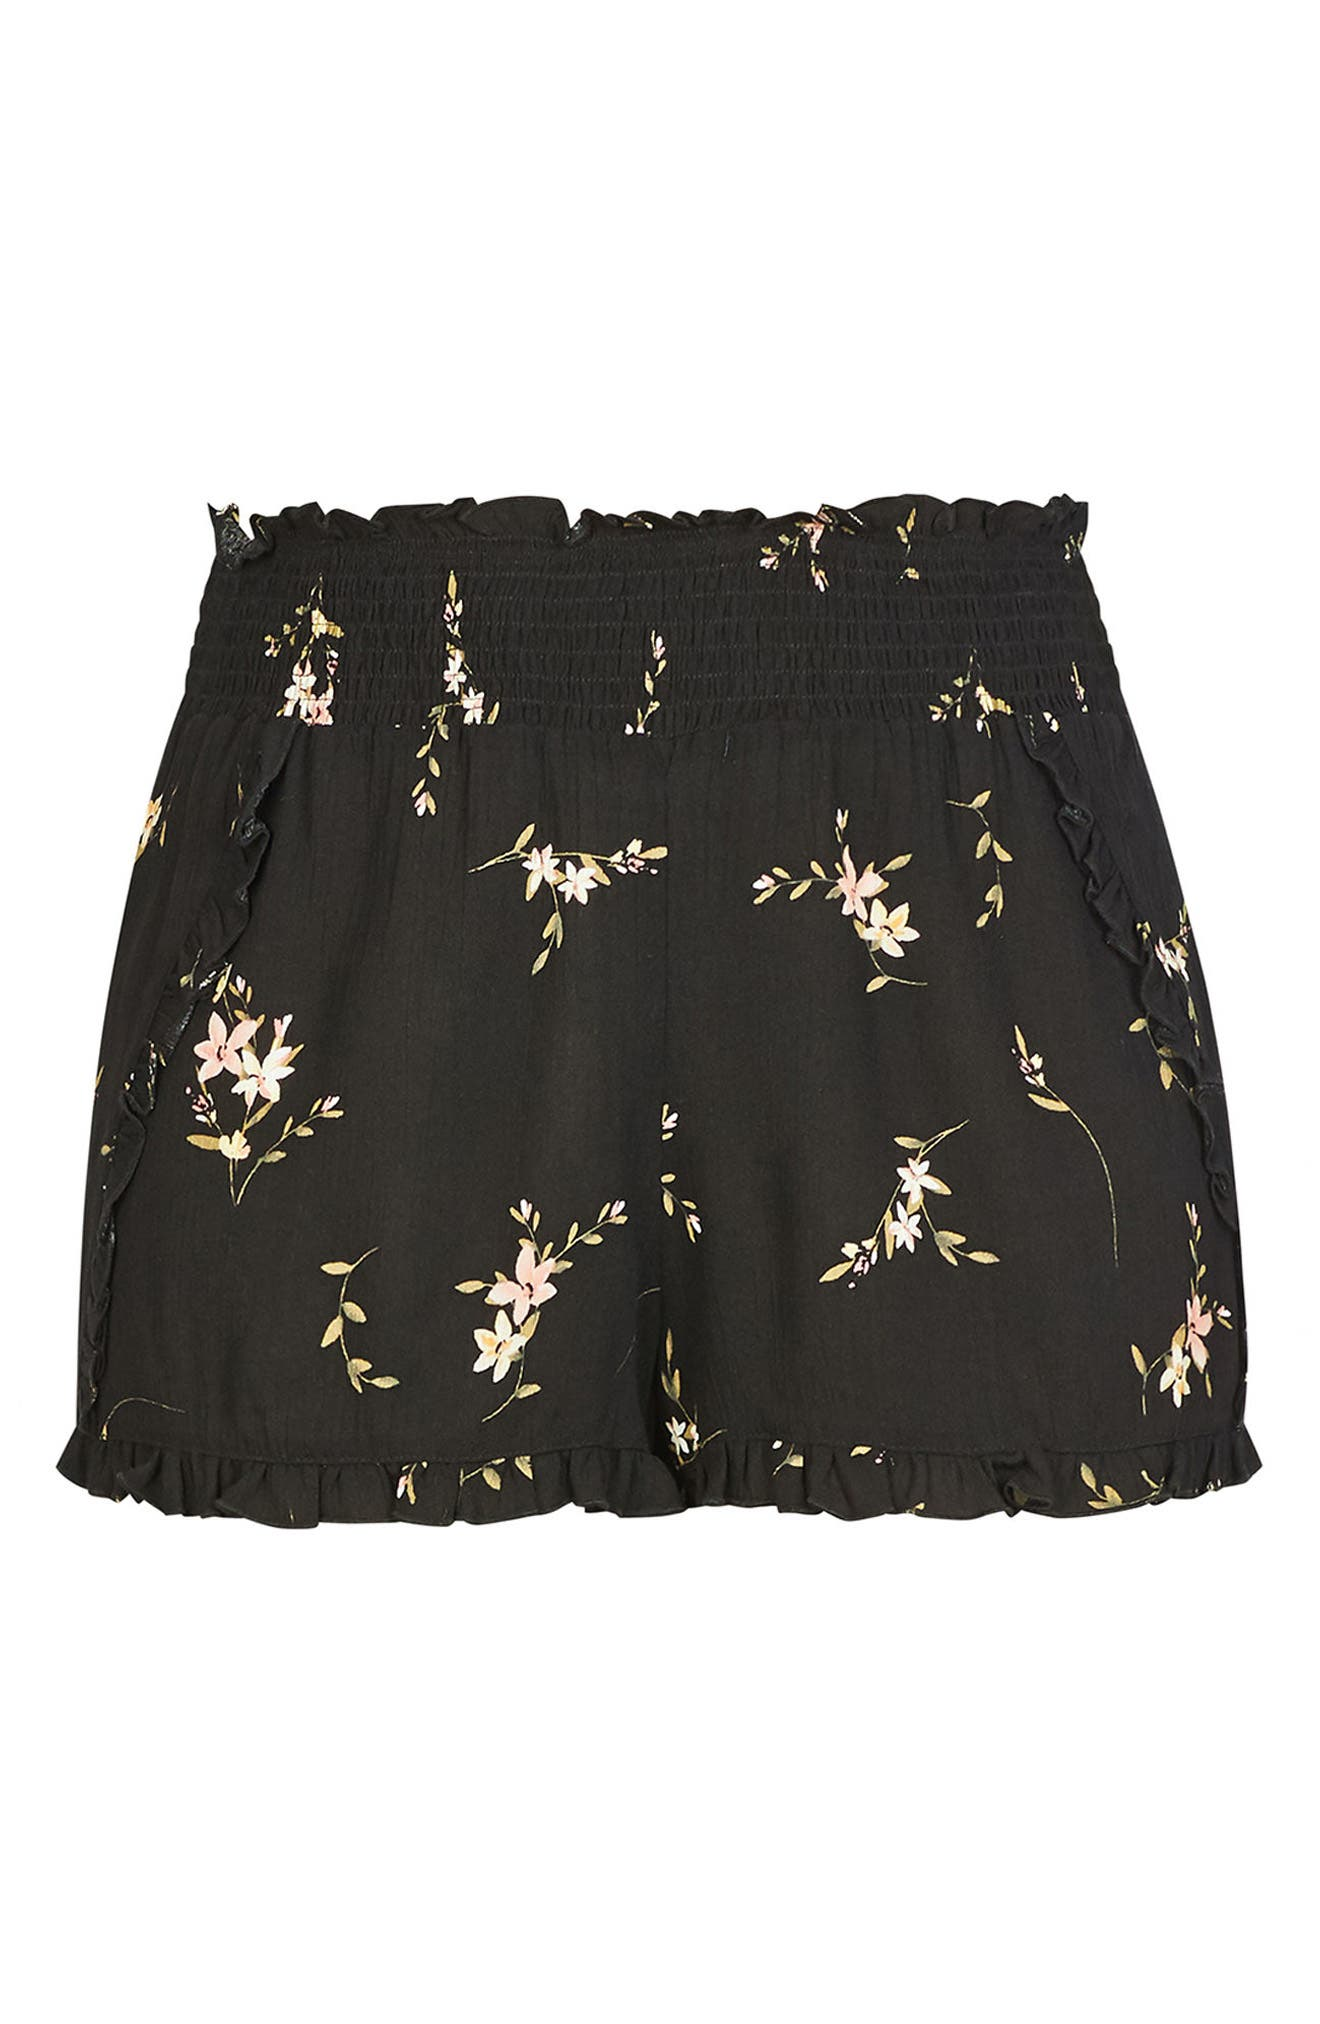 Aerial Floral Pull-On Shorts,                             Alternate thumbnail 4, color,                             002